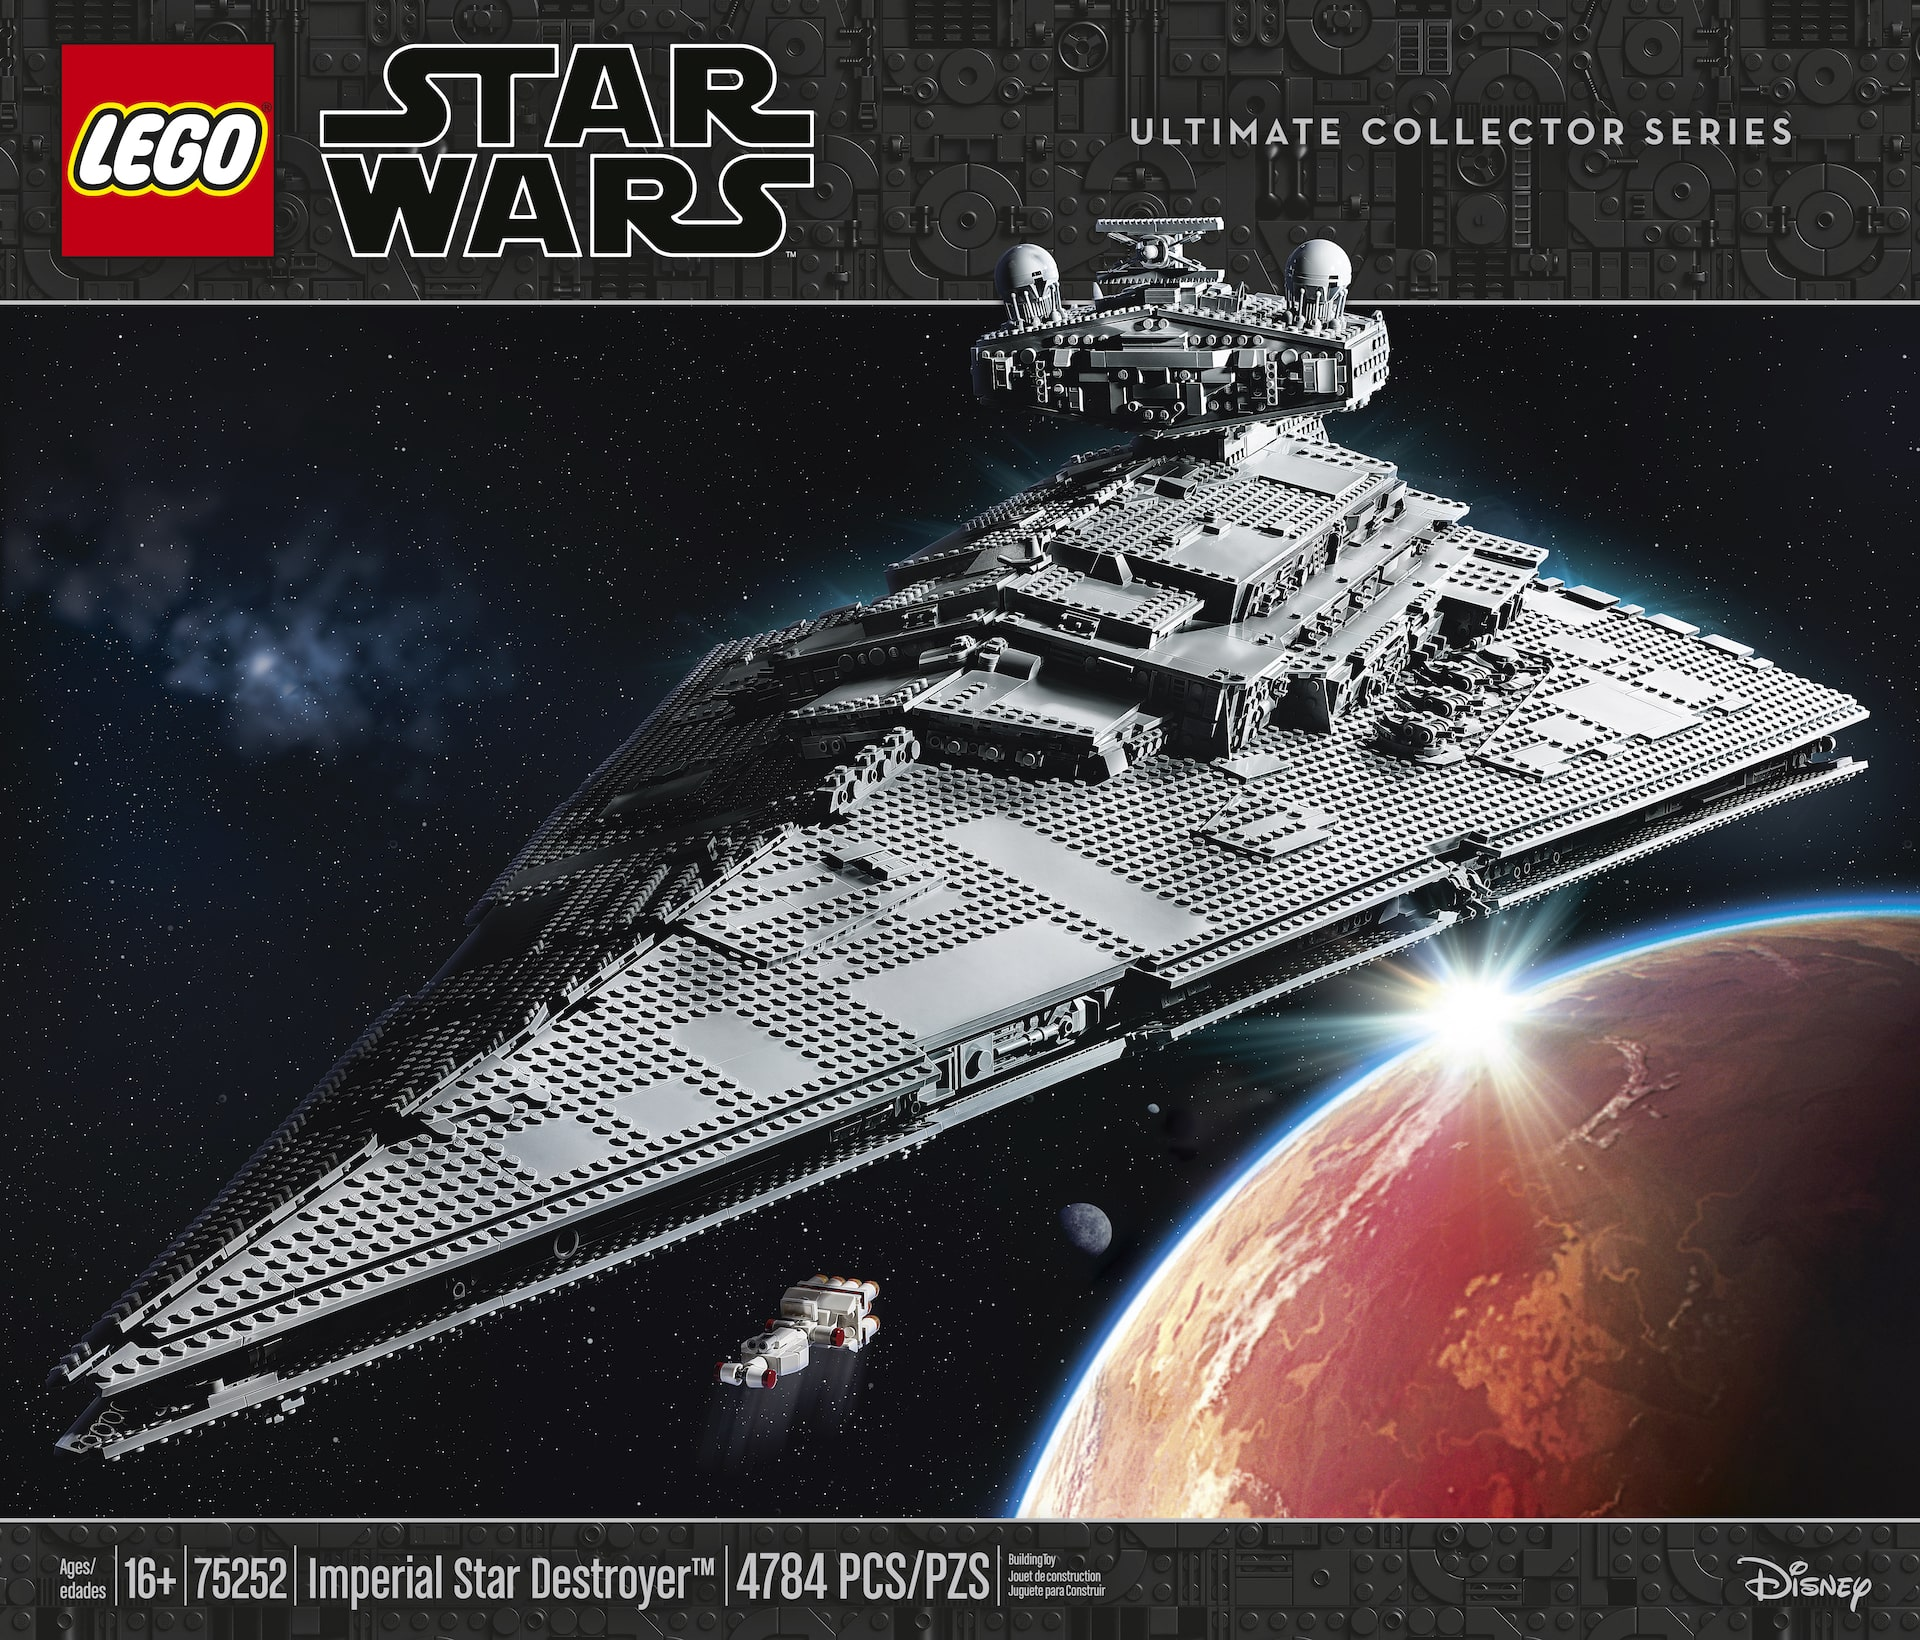 First Look: LEGO Star Wars Imperial Star Destroyer with new 4,700 piece Imperial Star Destroyer with Tantive IV starship